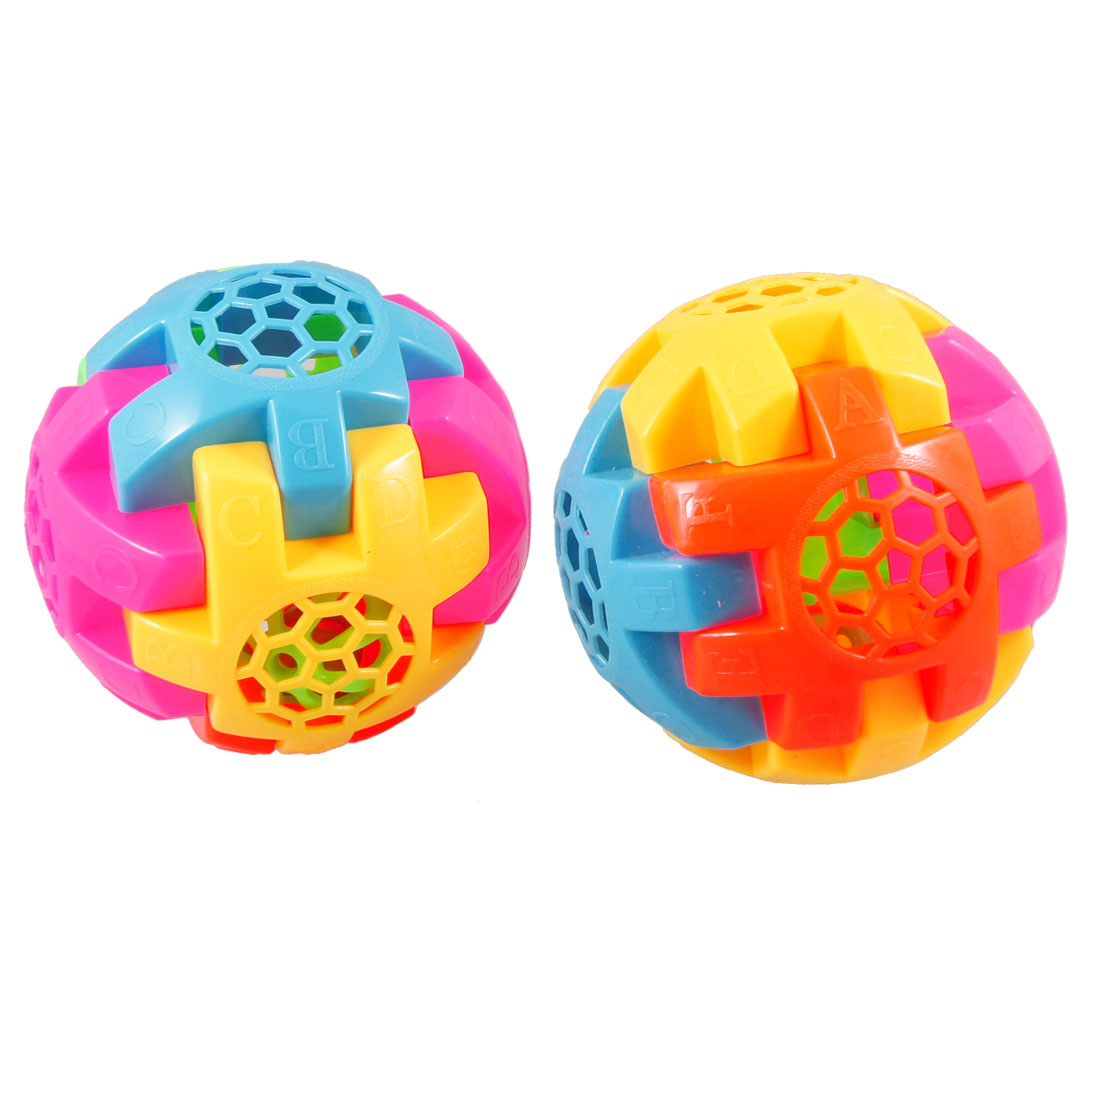 2 Pcs Words Embossed Assorted Color Plastic Hollow Block Ball Bell Puzzle Toy